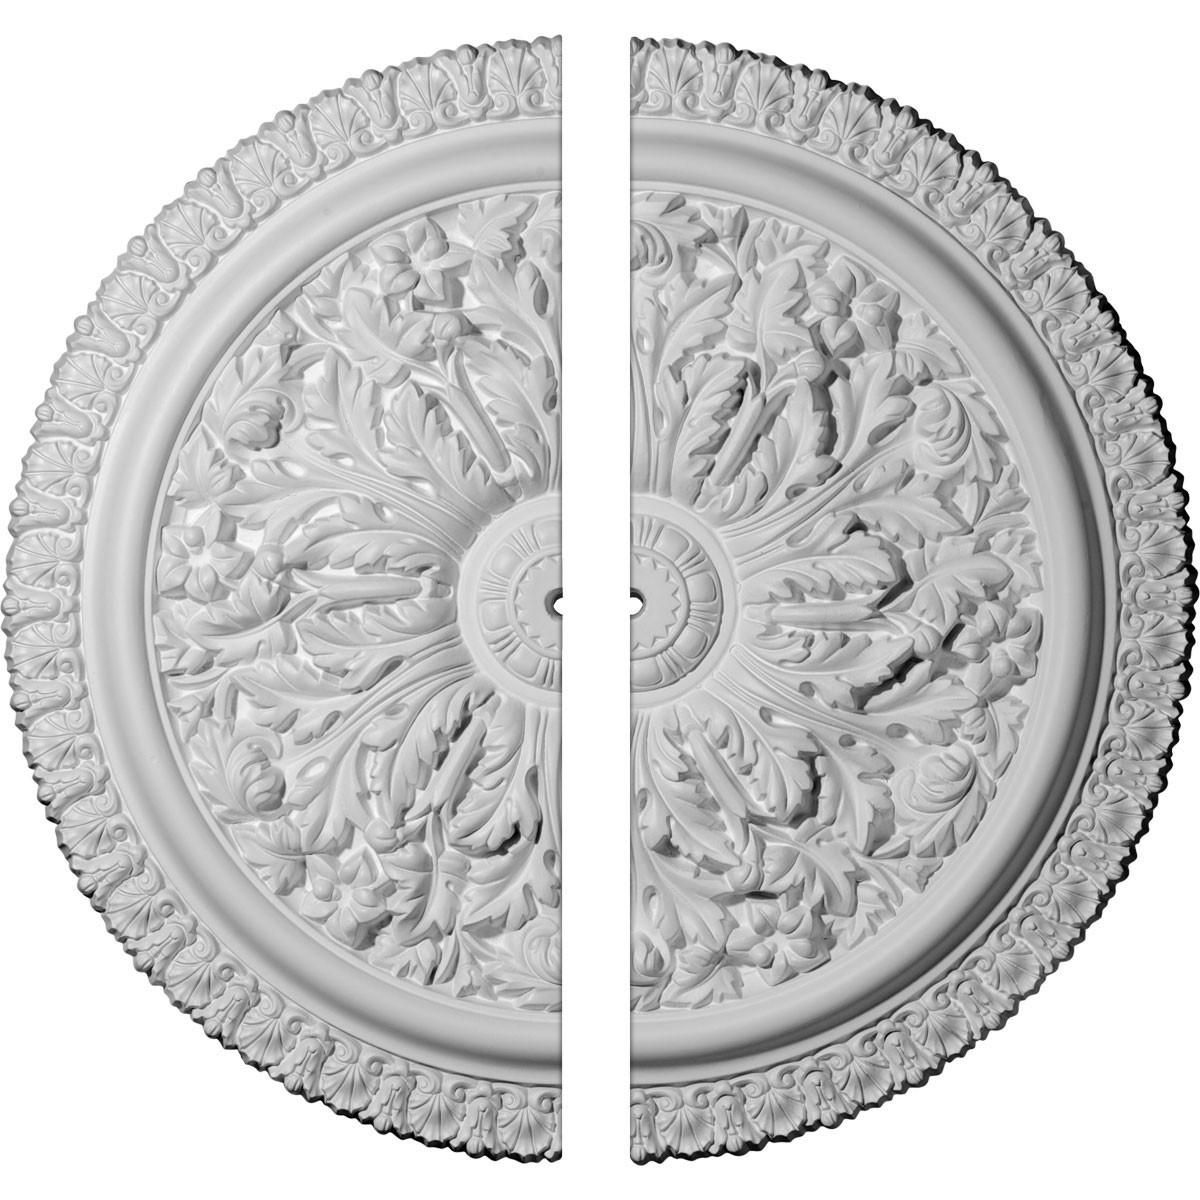 """EM-CM28NI2 - 28 3/4""""OD x 7/8""""ID x 1 7/8""""P Nicole Ceiling Medallion, Two Piece (Fits Canopies up to 5 3/4"""")"""